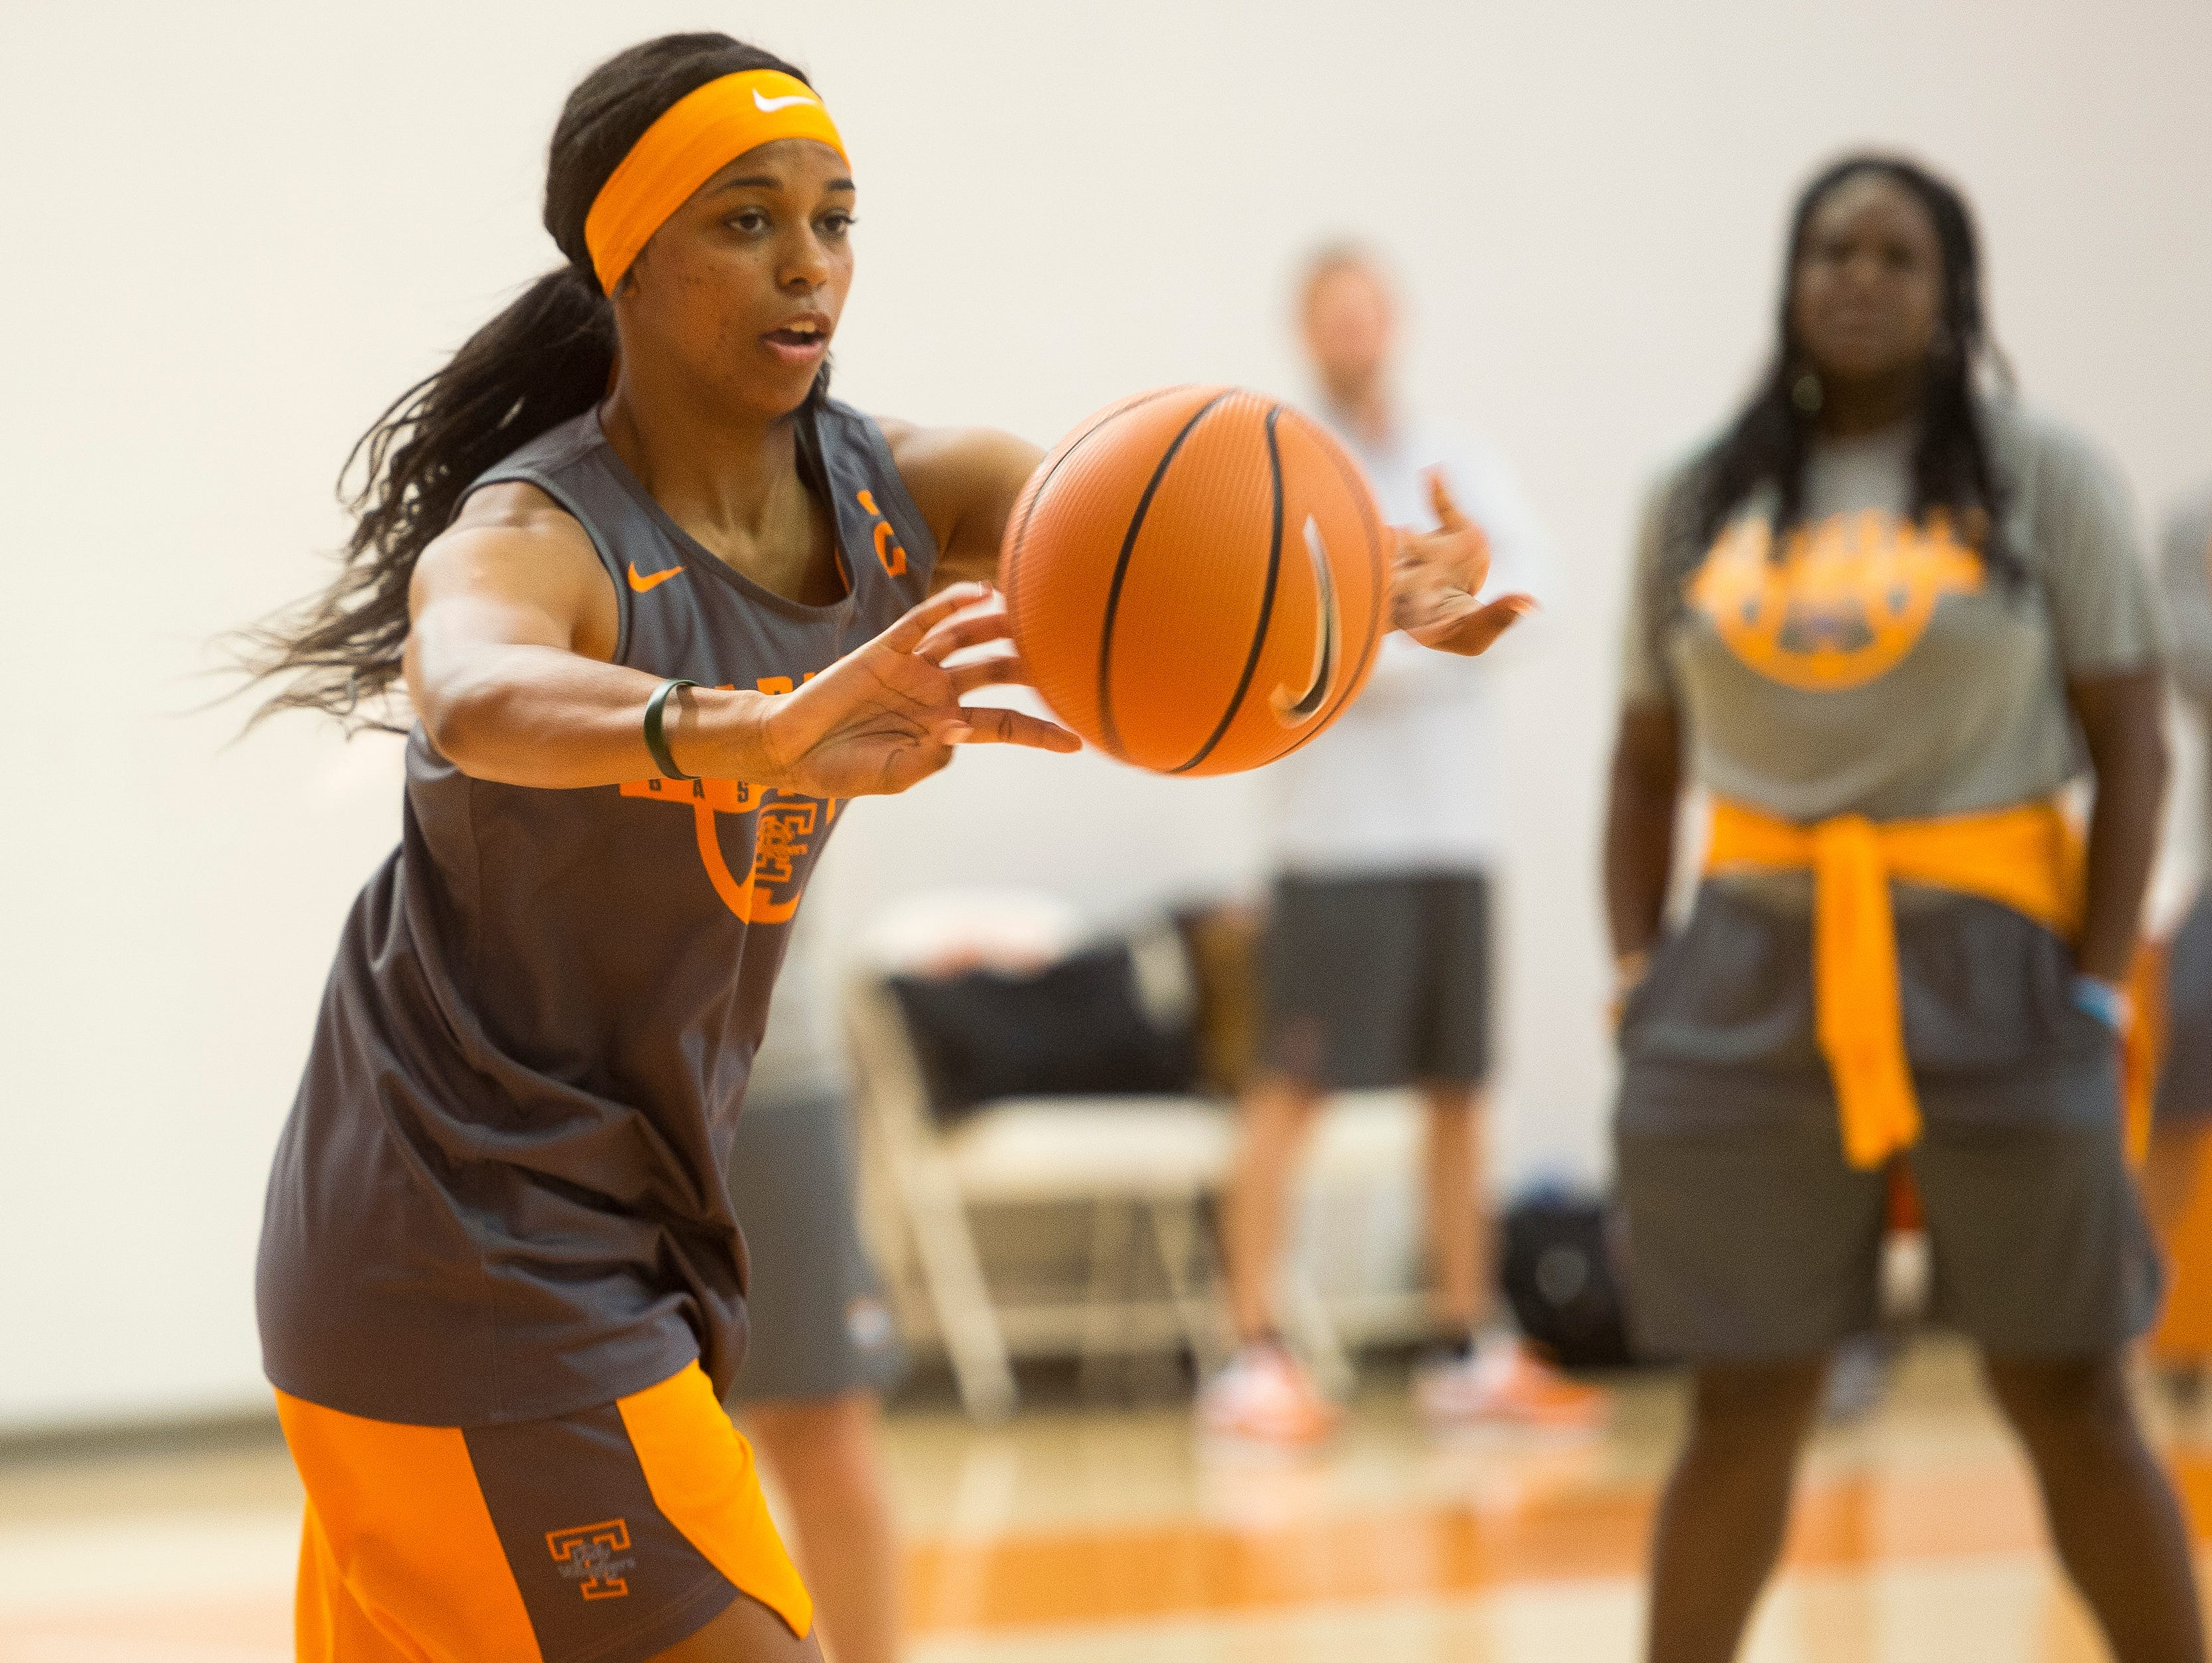 Tennessee guard Evina Westbrook (2) passes the ball off to a teammate during the Lady Vols first official preseason practice at Pratt Pavilion on Tuesday, Oct. 3, 2017.